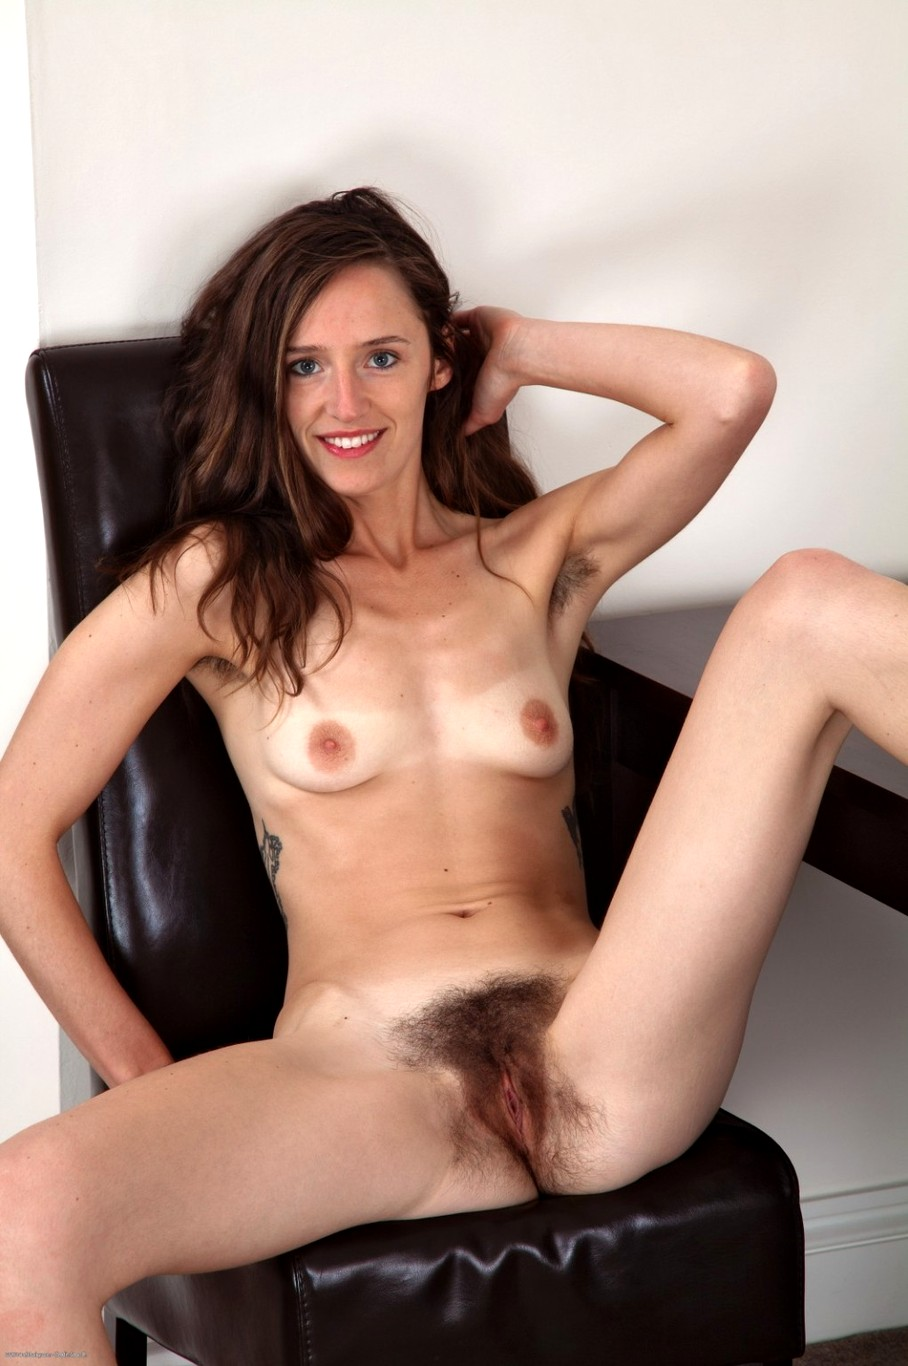 Hairy pussy skinny woman